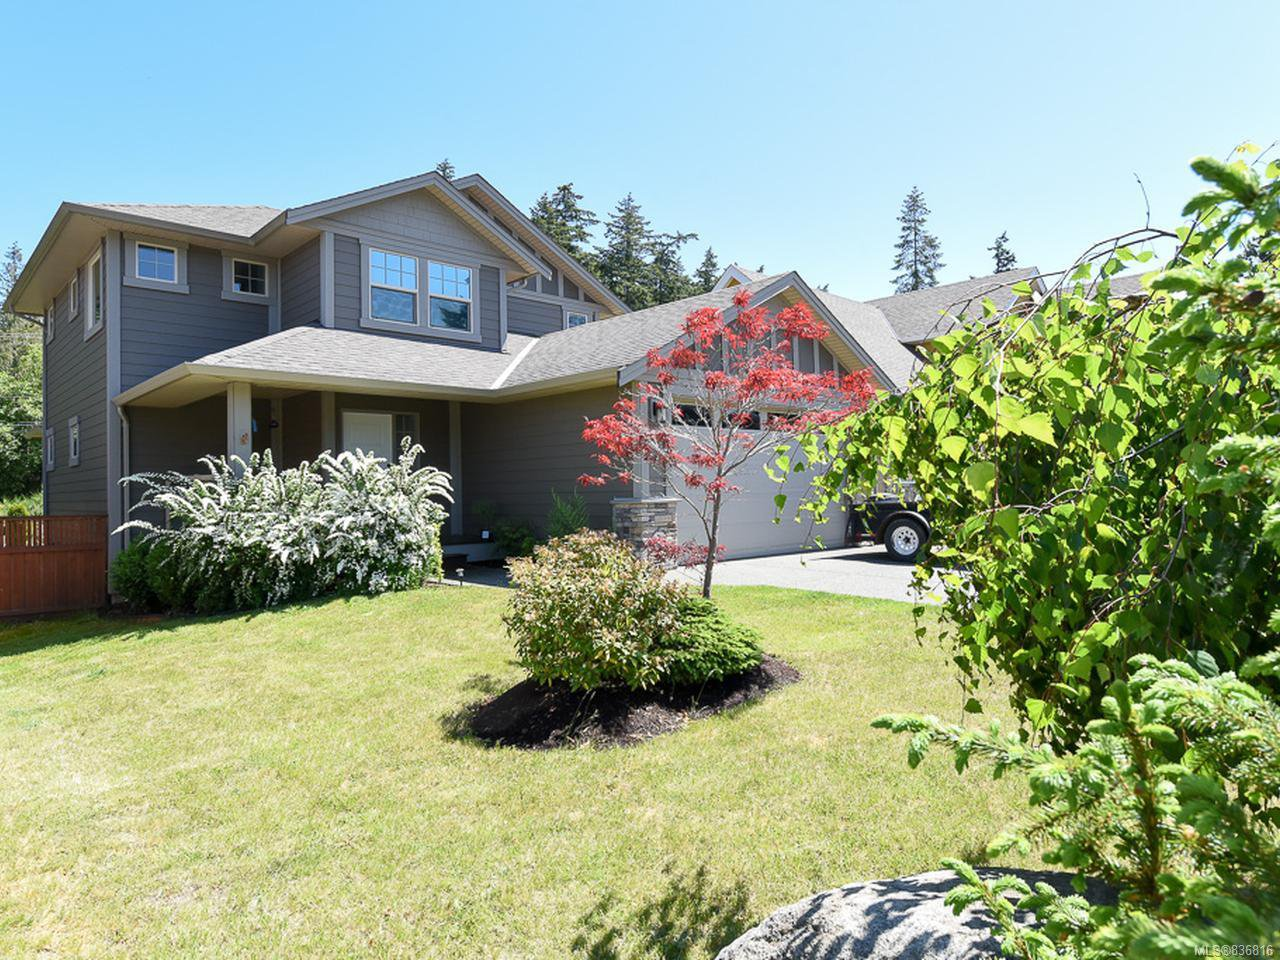 Main Photo: 350 Forester Ave in COMOX: CV Comox (Town of) House for sale (Comox Valley)  : MLS®# 836816